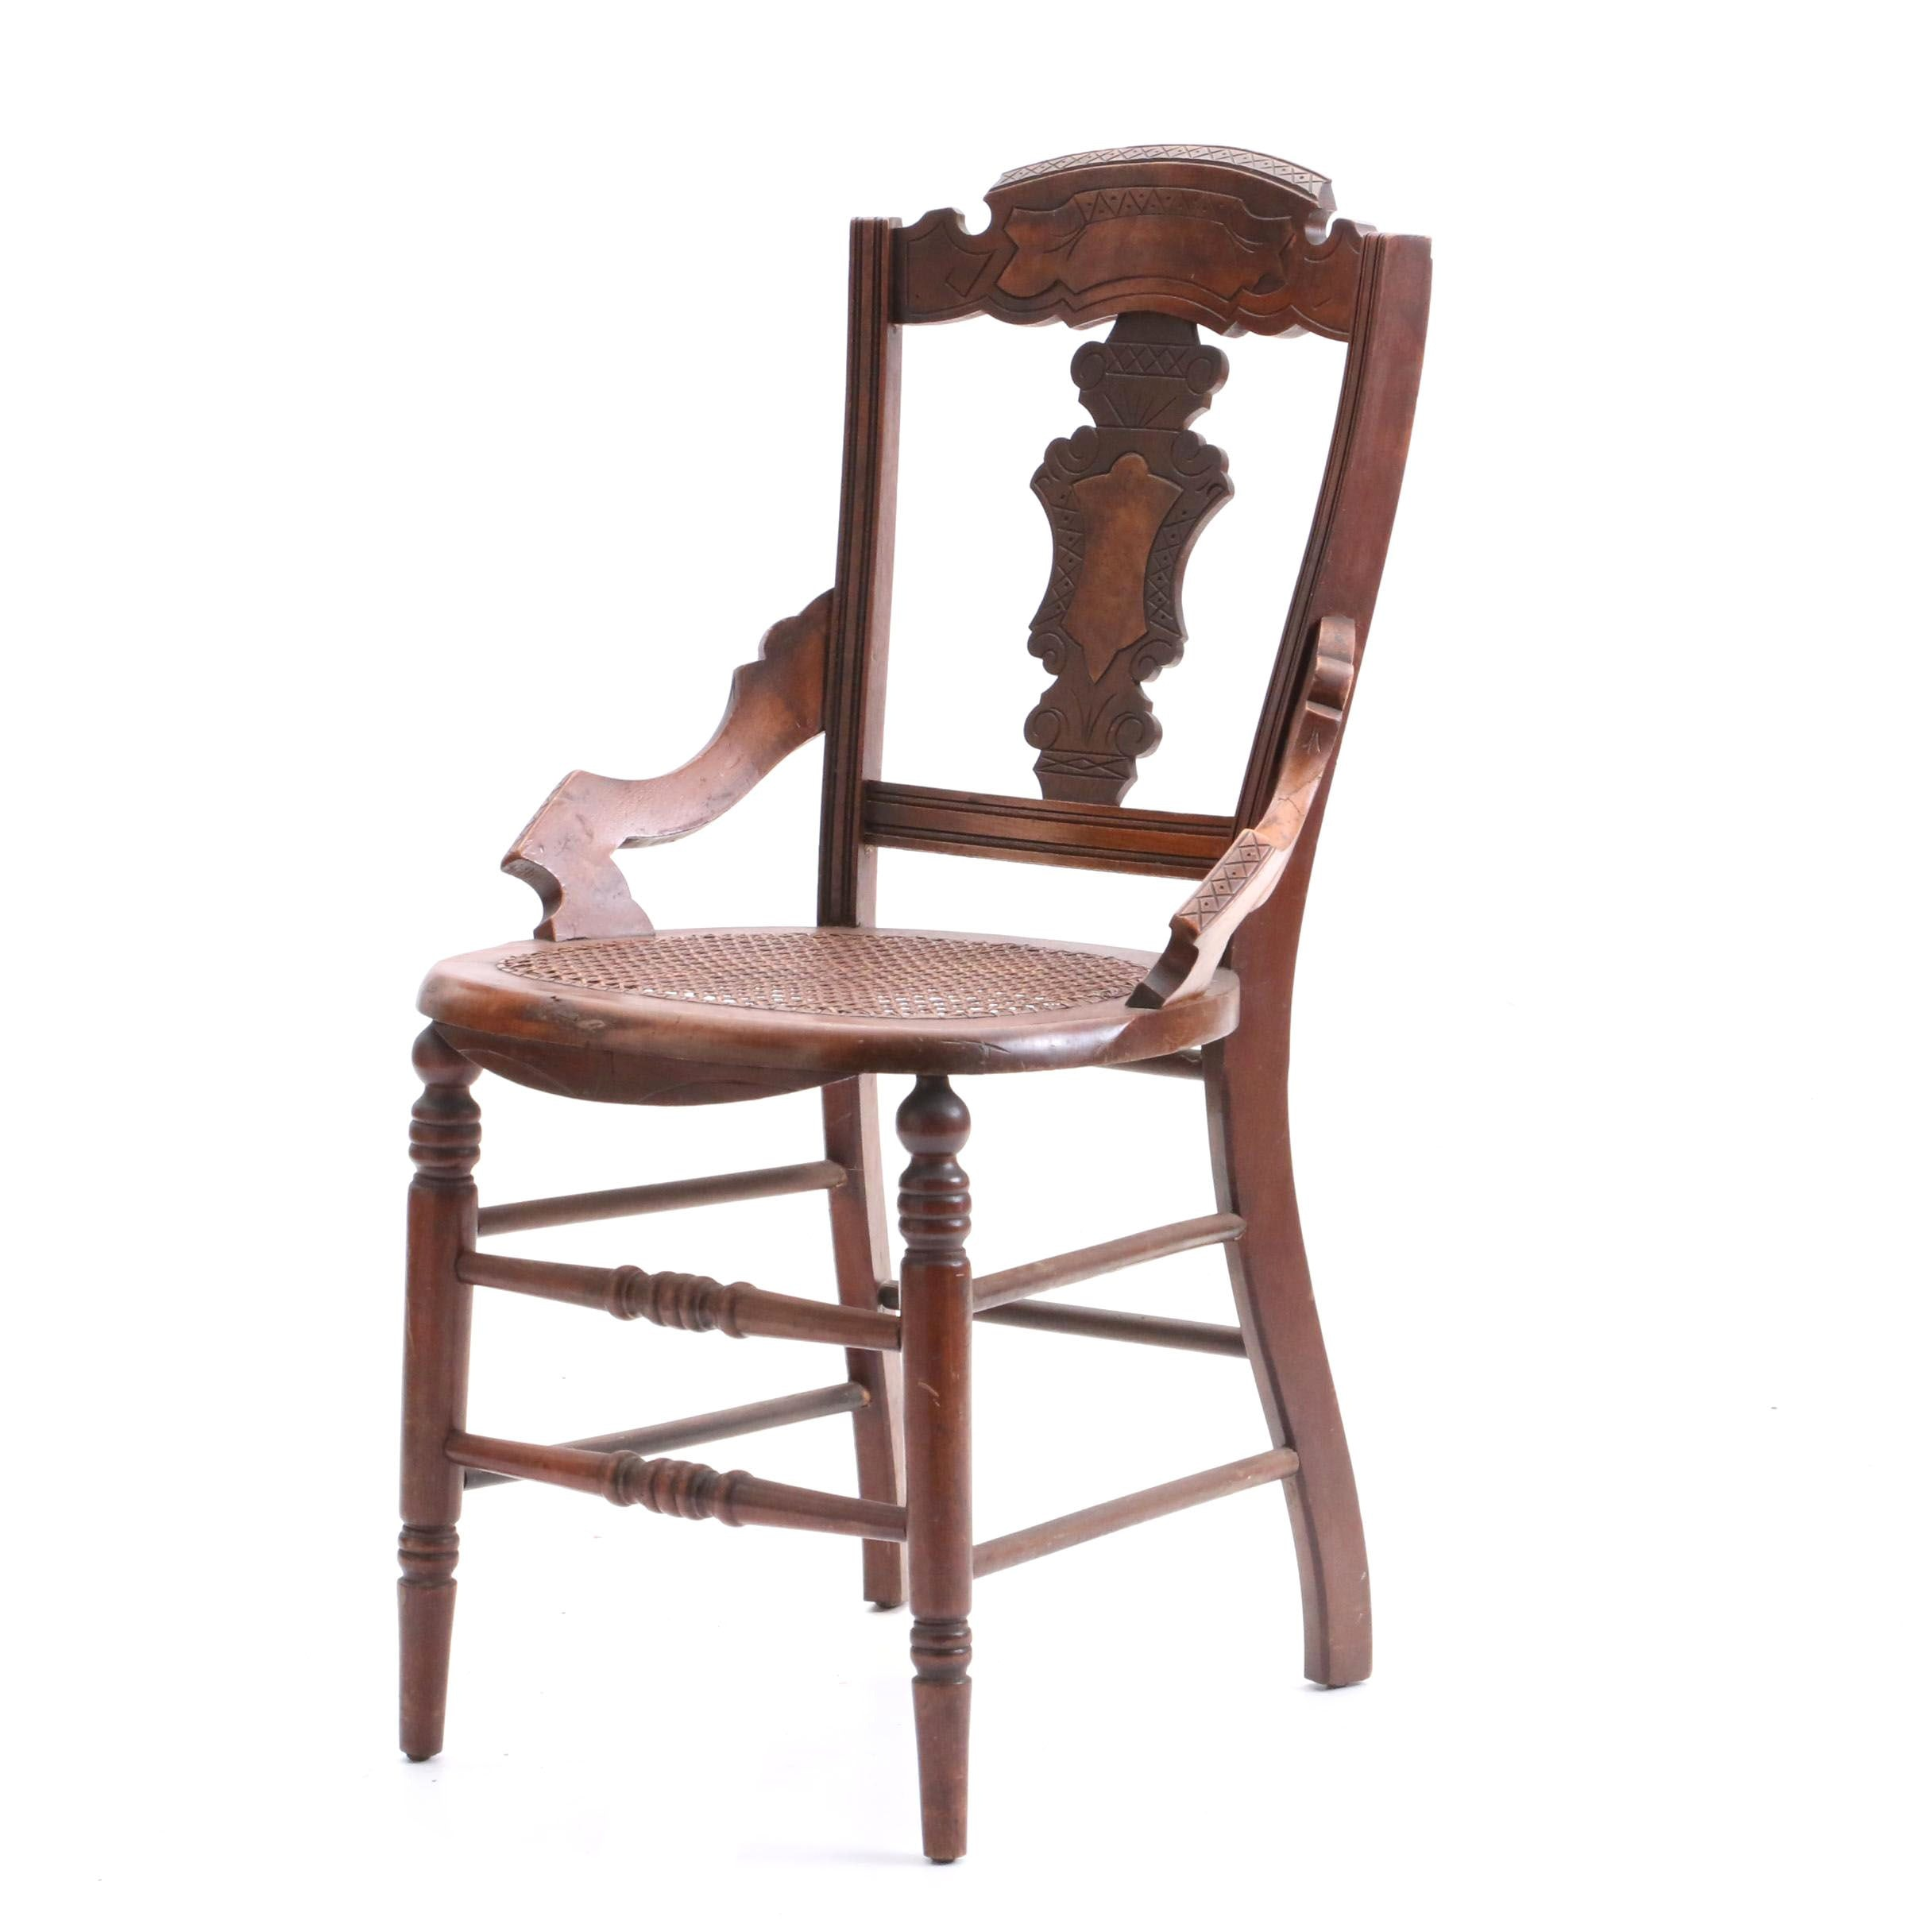 Eastlake Walnut Side Chair with Cane Seat, Late 19th Century